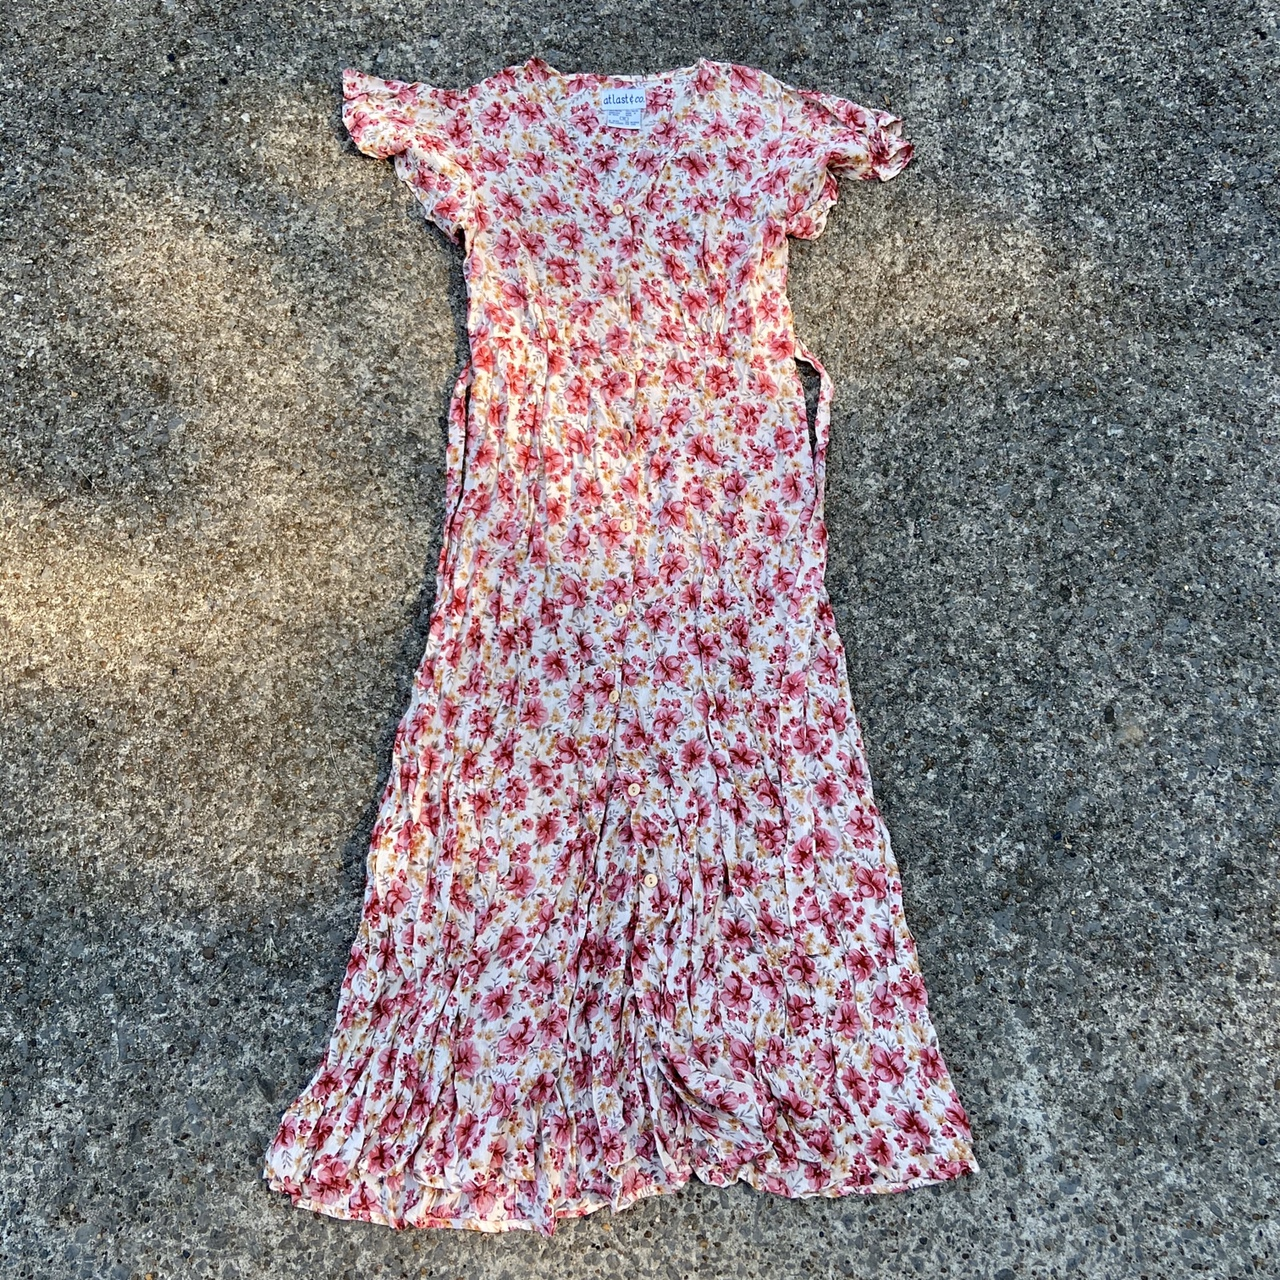 Product Image 1 - Vintage pink and red floral